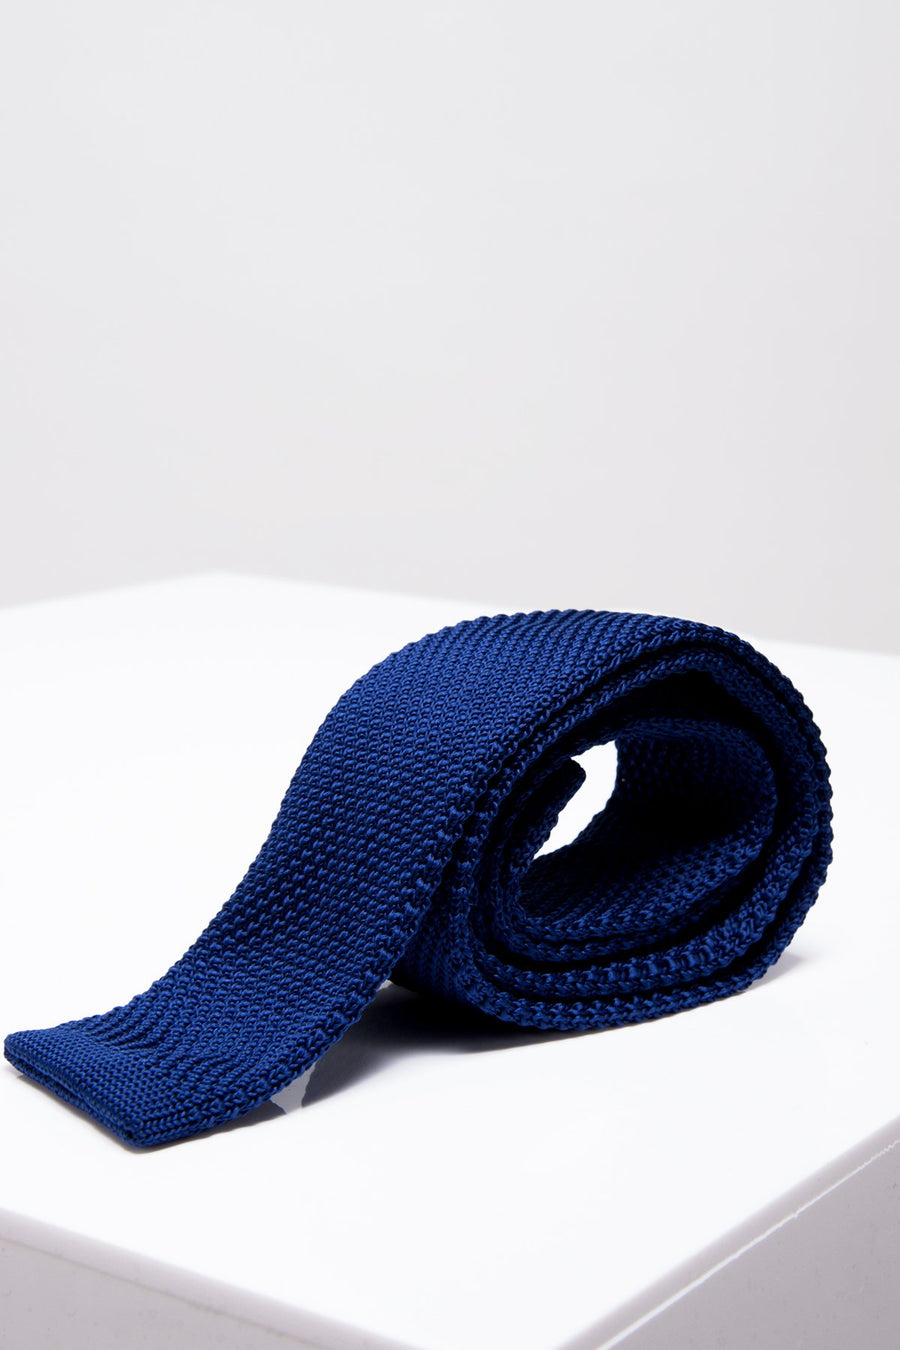 KT Royal Blue Knitted Tie - Wedding Suit Direct